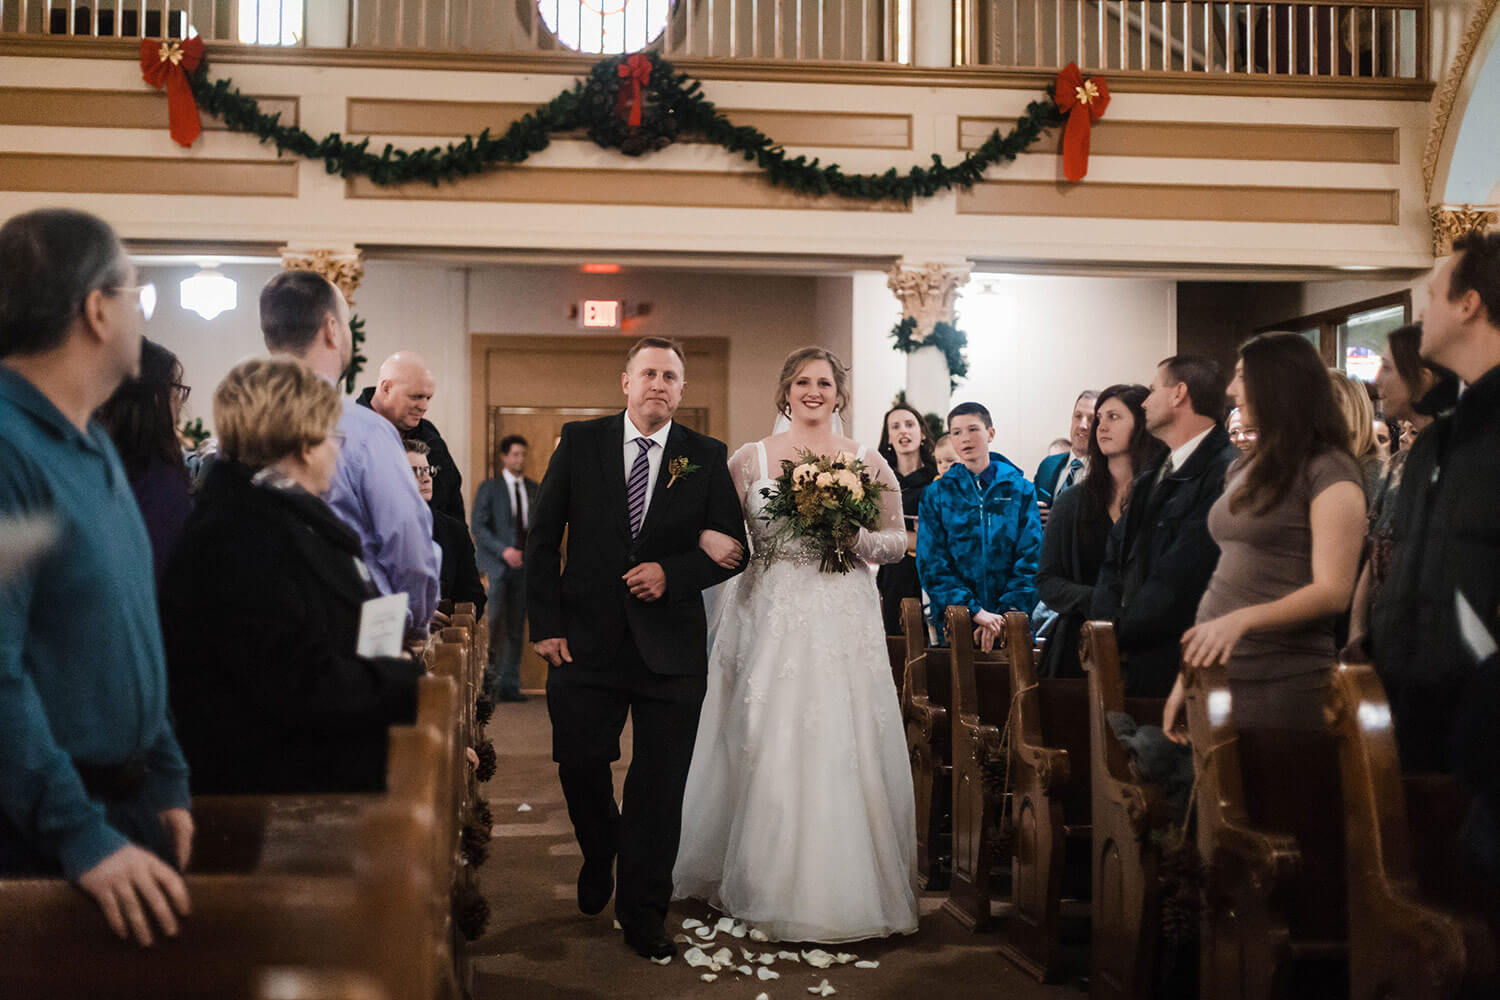 Father walking bride down aisle at church